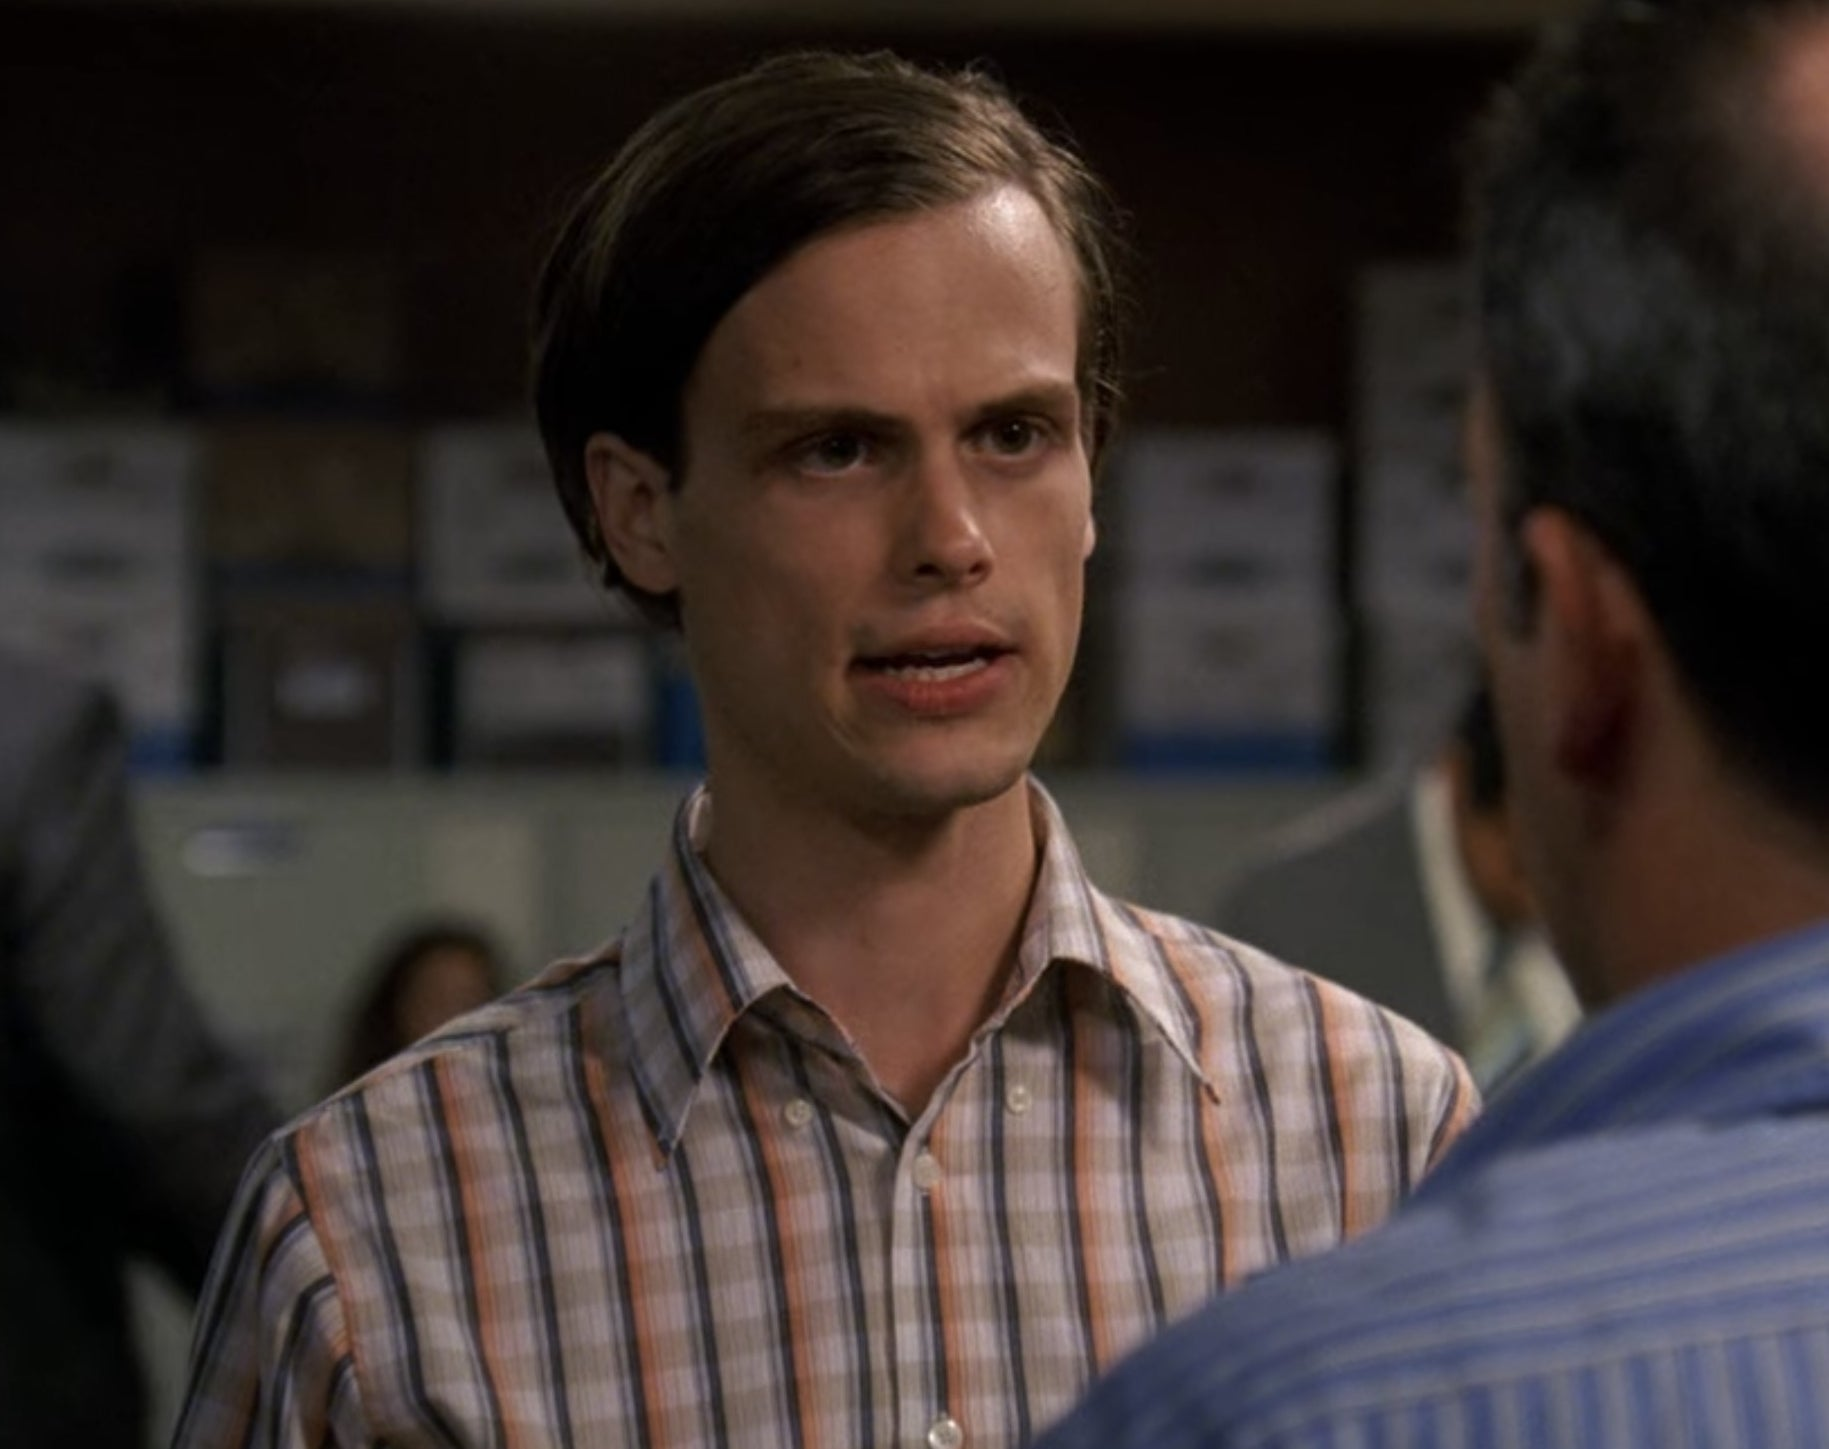 Spencer Reid from Criminal Minds talking to a person